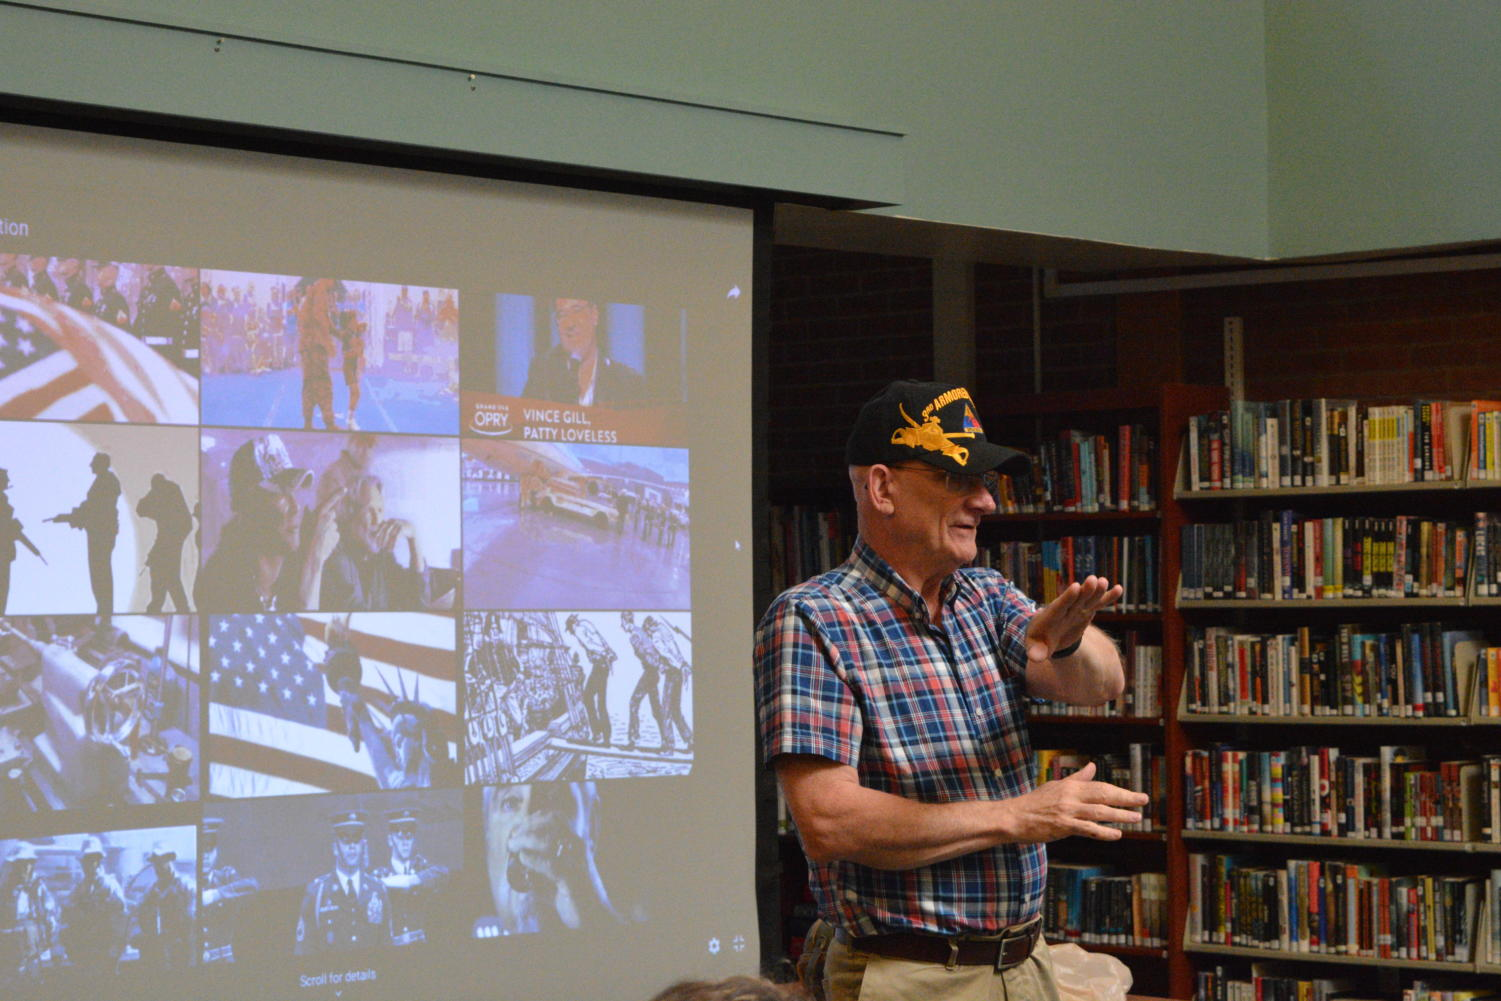 Honorable service -- Former math teacher and Vietnam-era veteran Bob Thomas presents to a group of students during the veterans celebration in the library. Senior Ashley Dummit organized the event, which too place on May 21 and May 22.